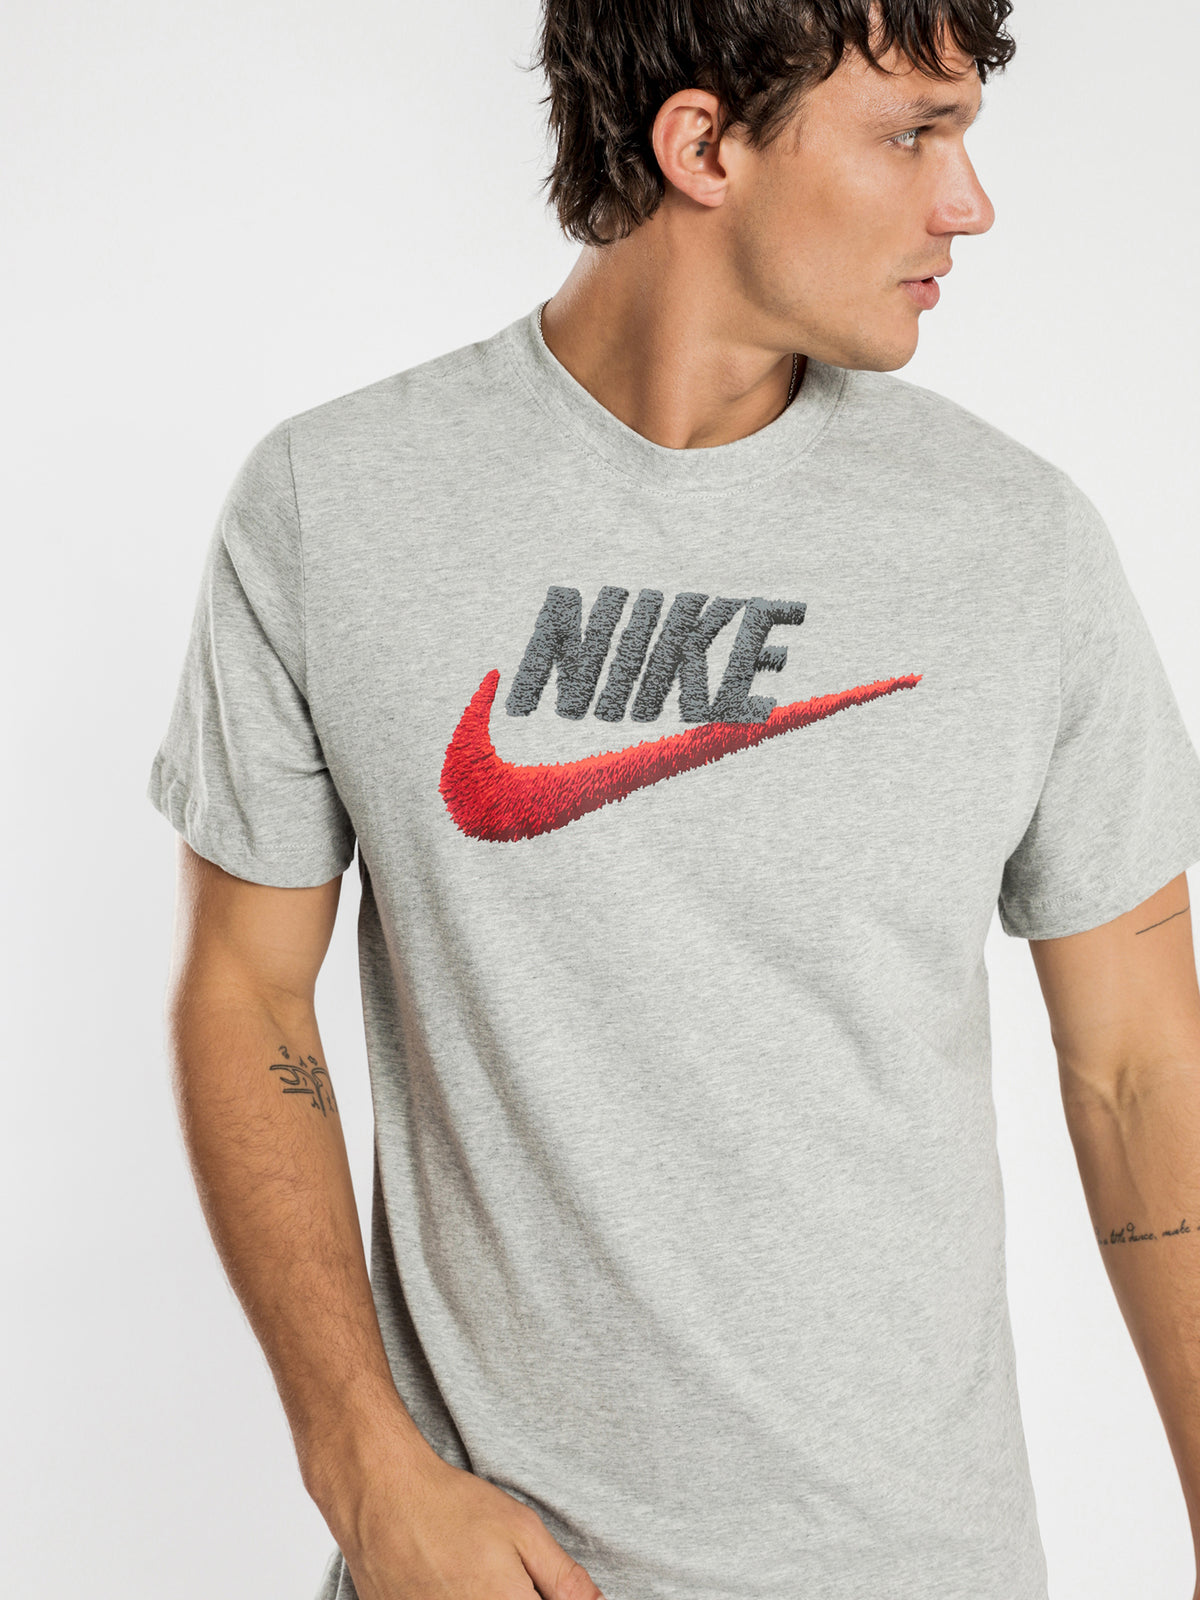 NSW Brand Mark T-Shirt in Grey